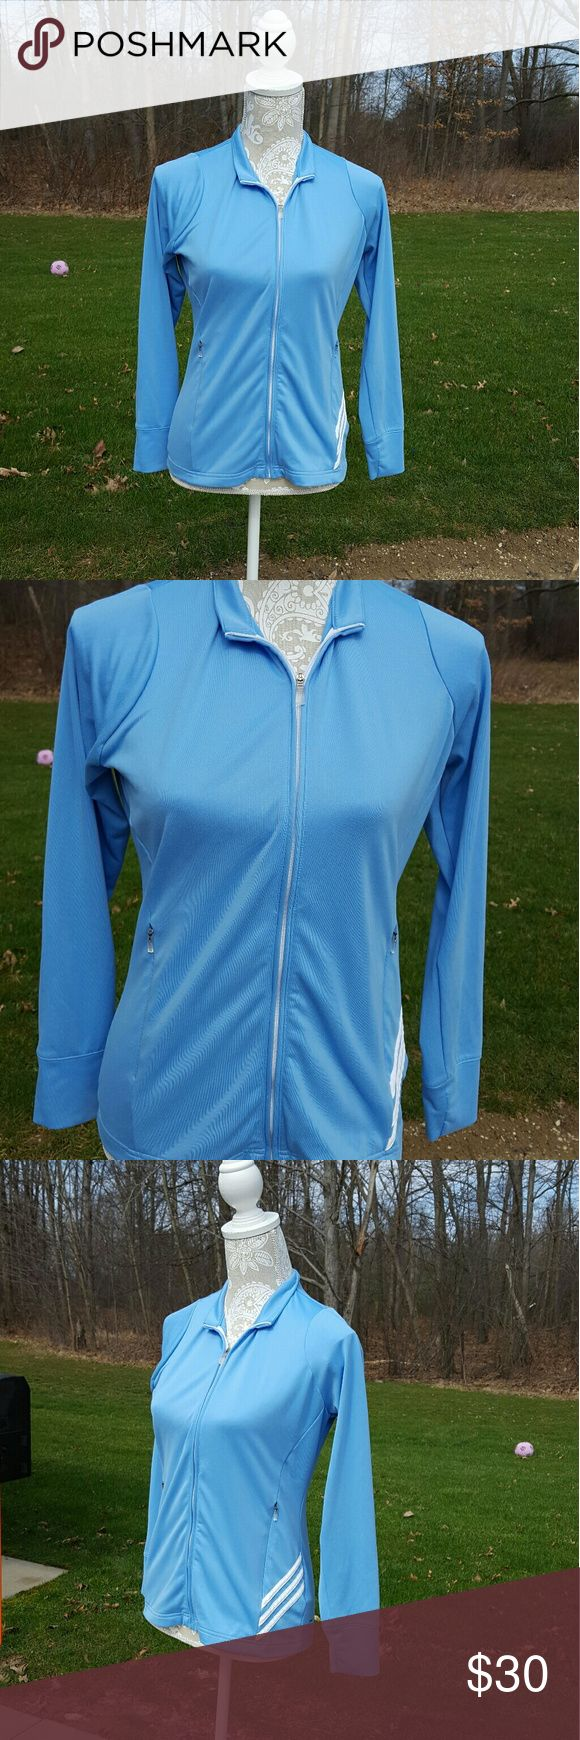 Adidas light blue and white zip up track jacket Worn once Size small Long sleeves Zip up Collared Zippered front pockets Climalite No Trades Adidas Jackets & Coats